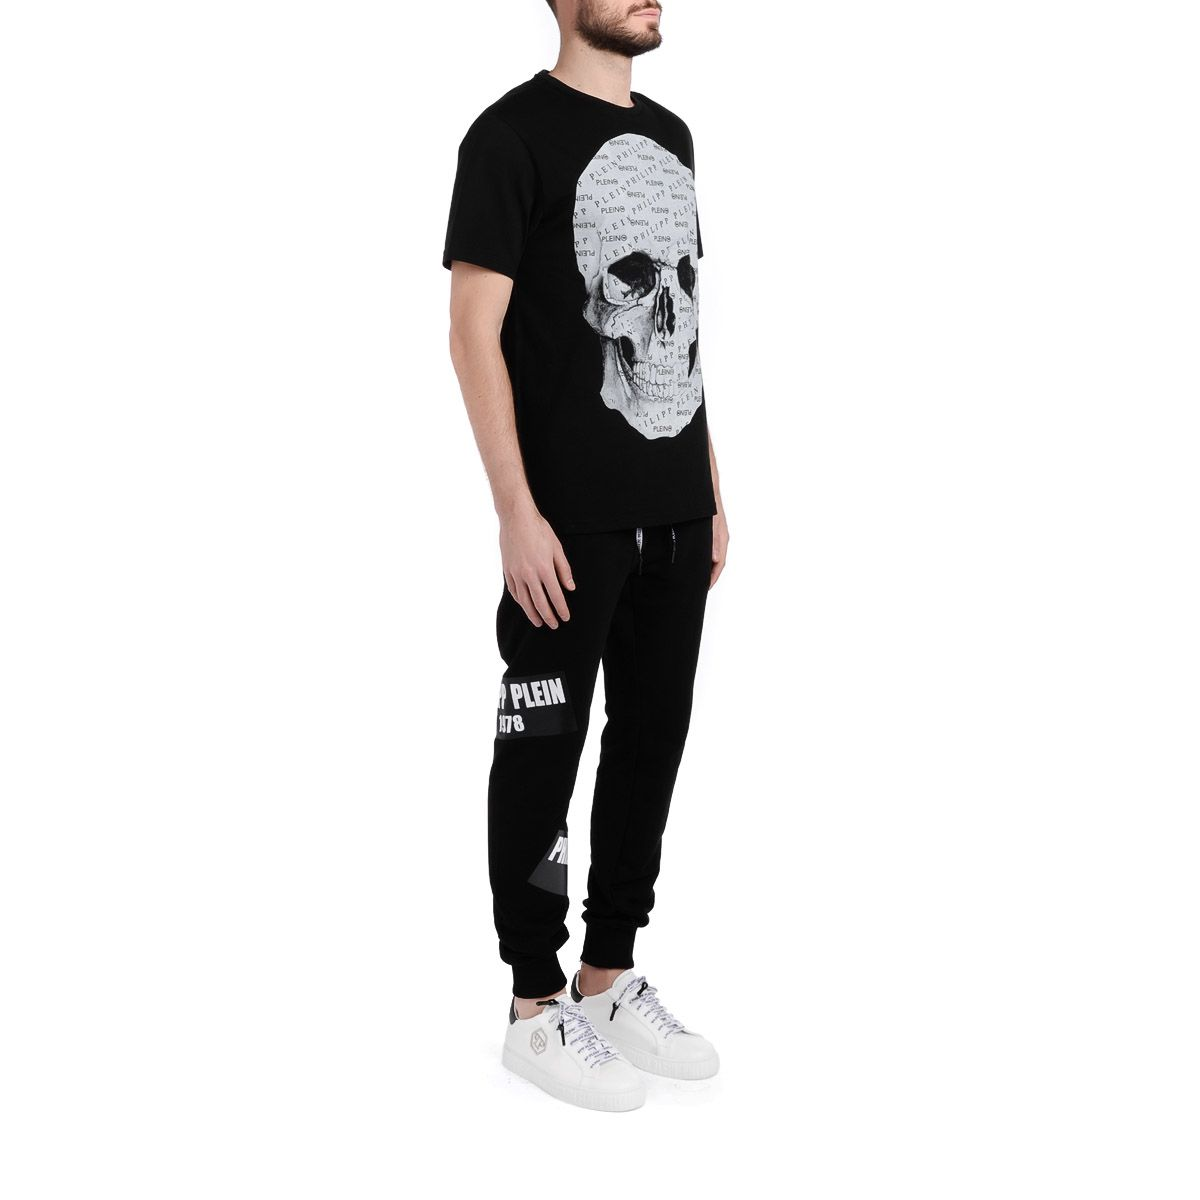 5d64724372 ... Philipp Plein Platinum Cut Black T-shirt With Skull Impression - NERO